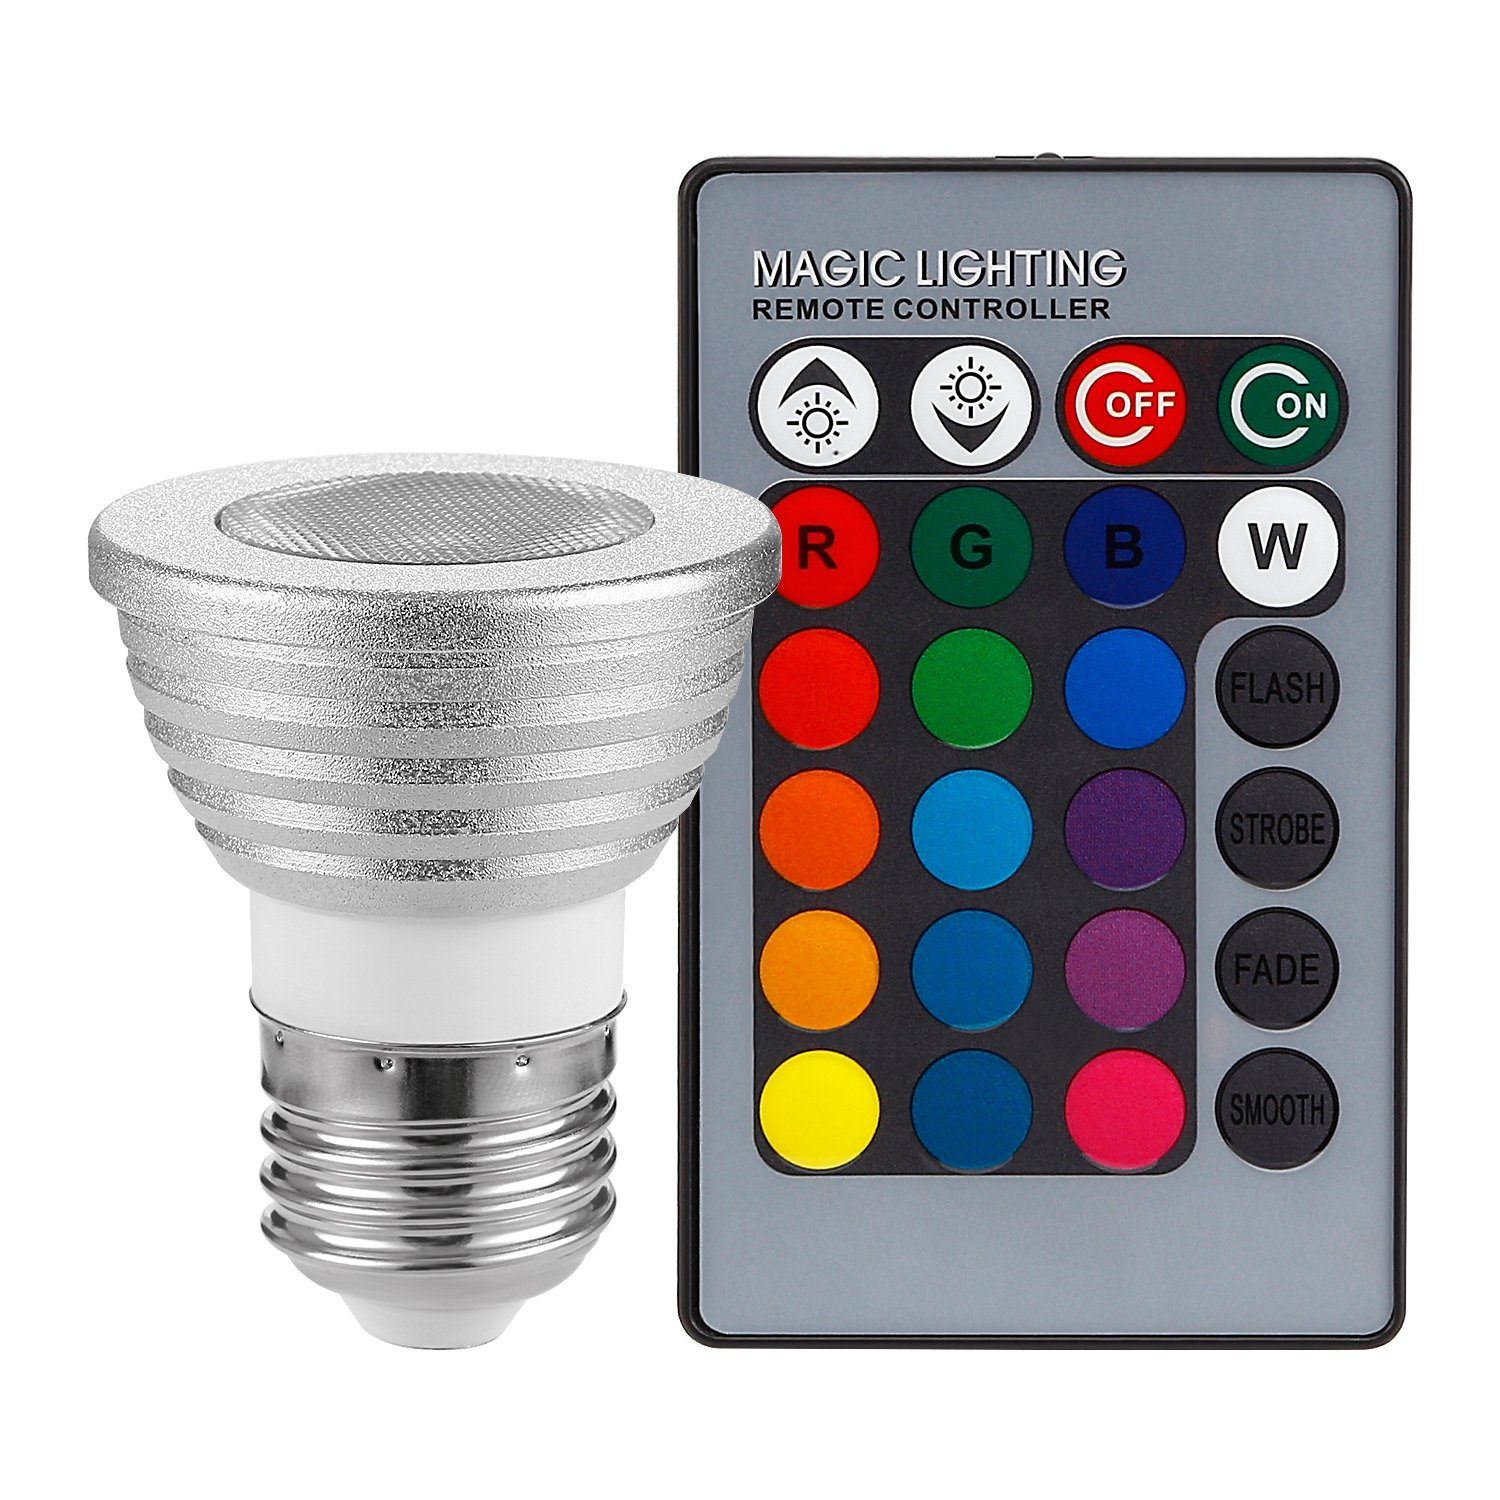 TORCHSTAR RGB Color Changing LED Spotlight Bulb Kit, 3W Multi-Color LED E26 Light Bulb + IR Remote Controller, for Home, General, Decorative, Accent Lighting - Silver